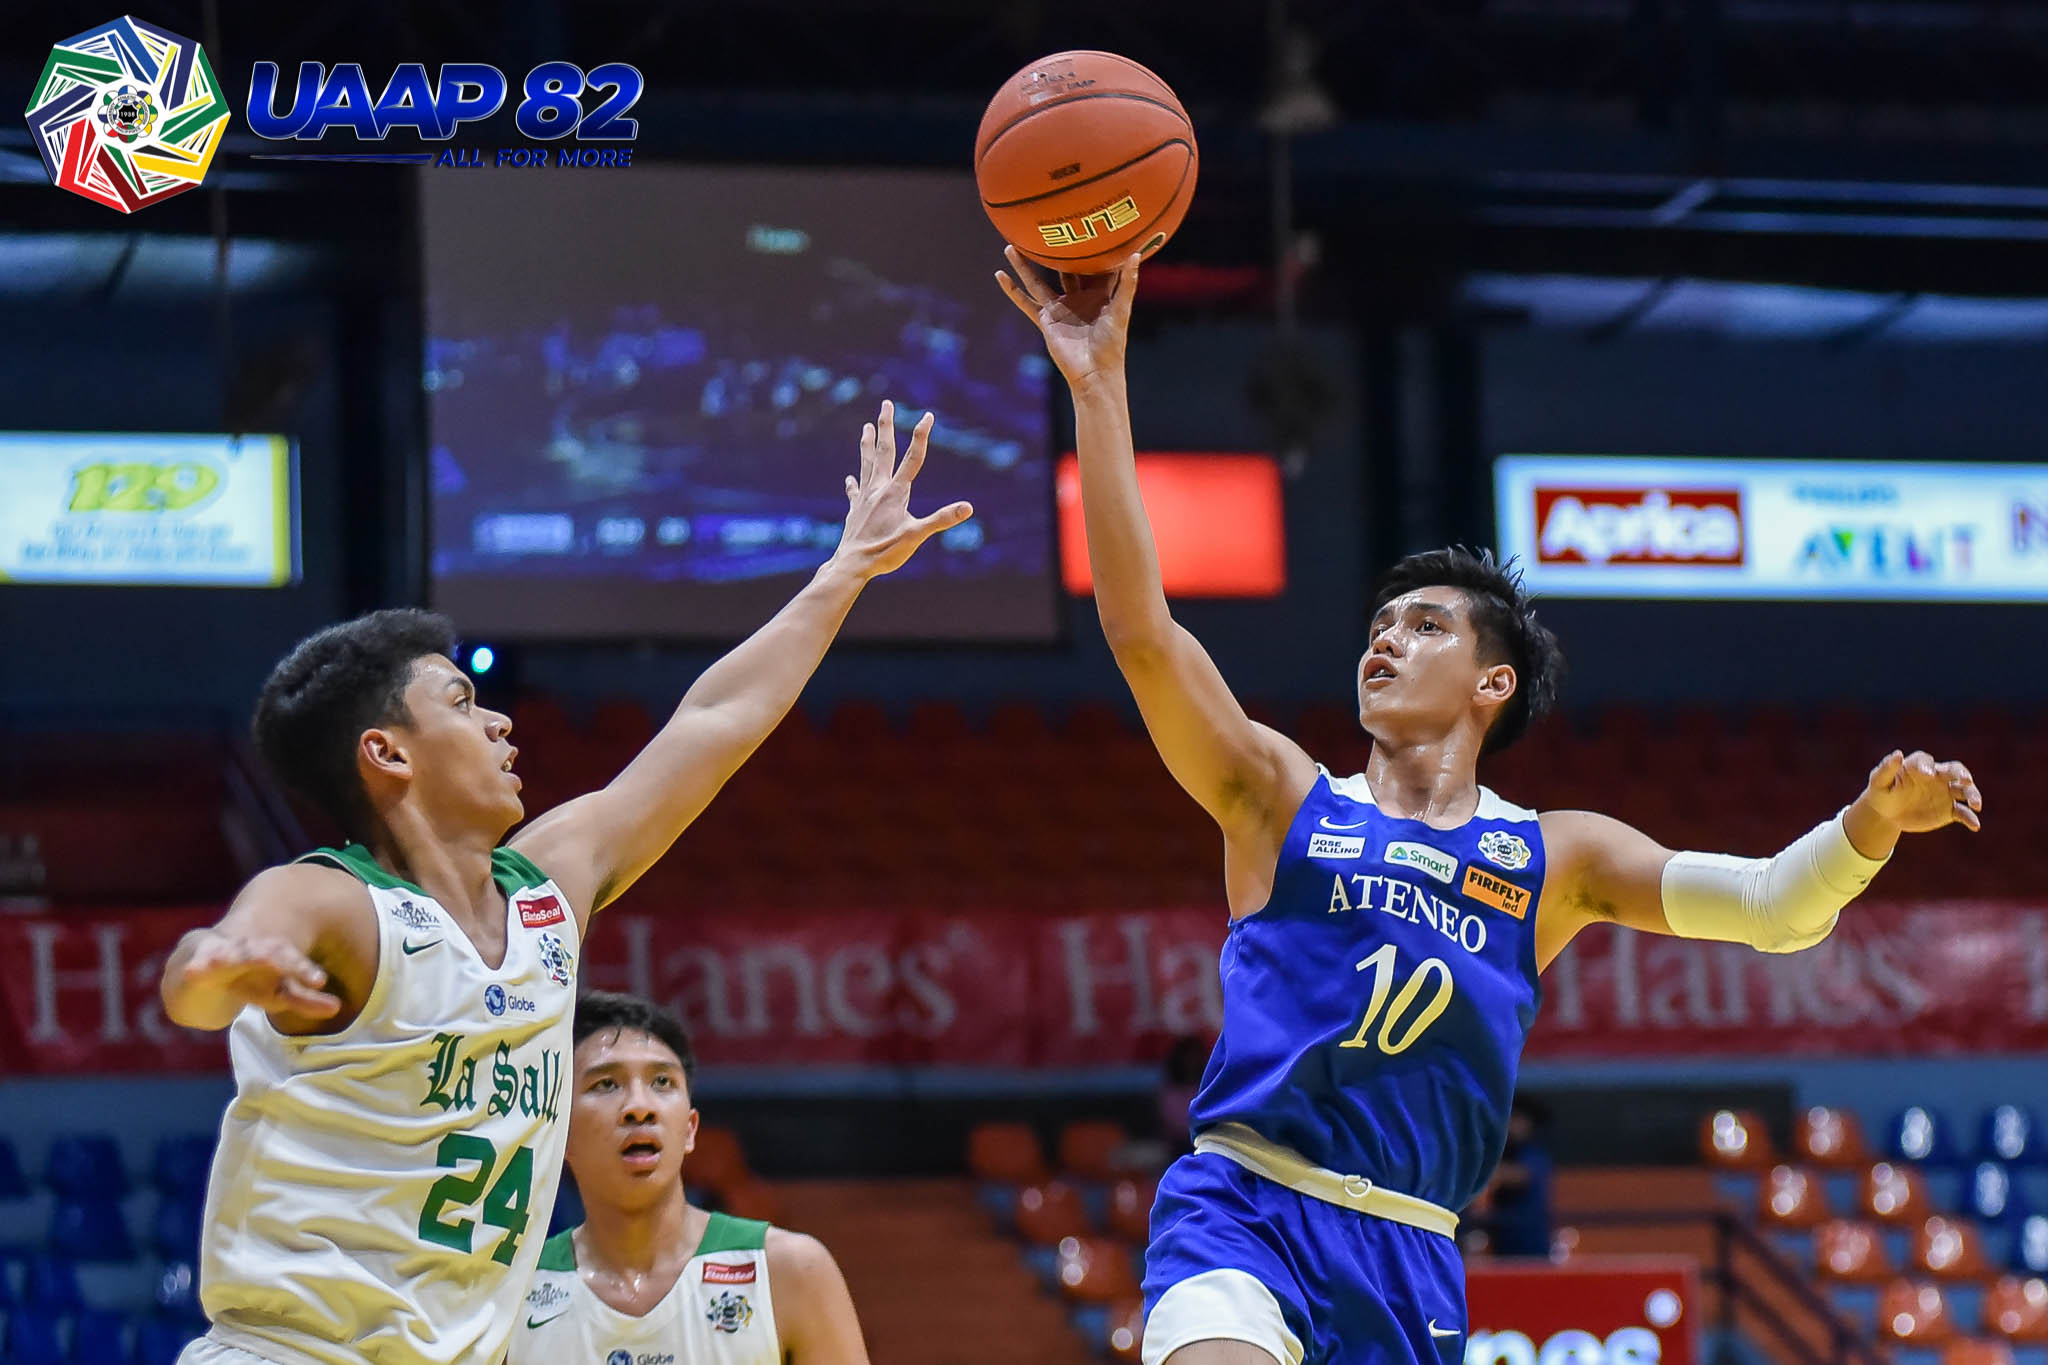 UAAP-82-Jrs-Basketball-ADMU-vs.-DLSZ-Padrigao-0422 Baldwin believes Padrigao has better court vision than past Ateneo floor generals ADMU Basketball News UAAP  - philippine sports news